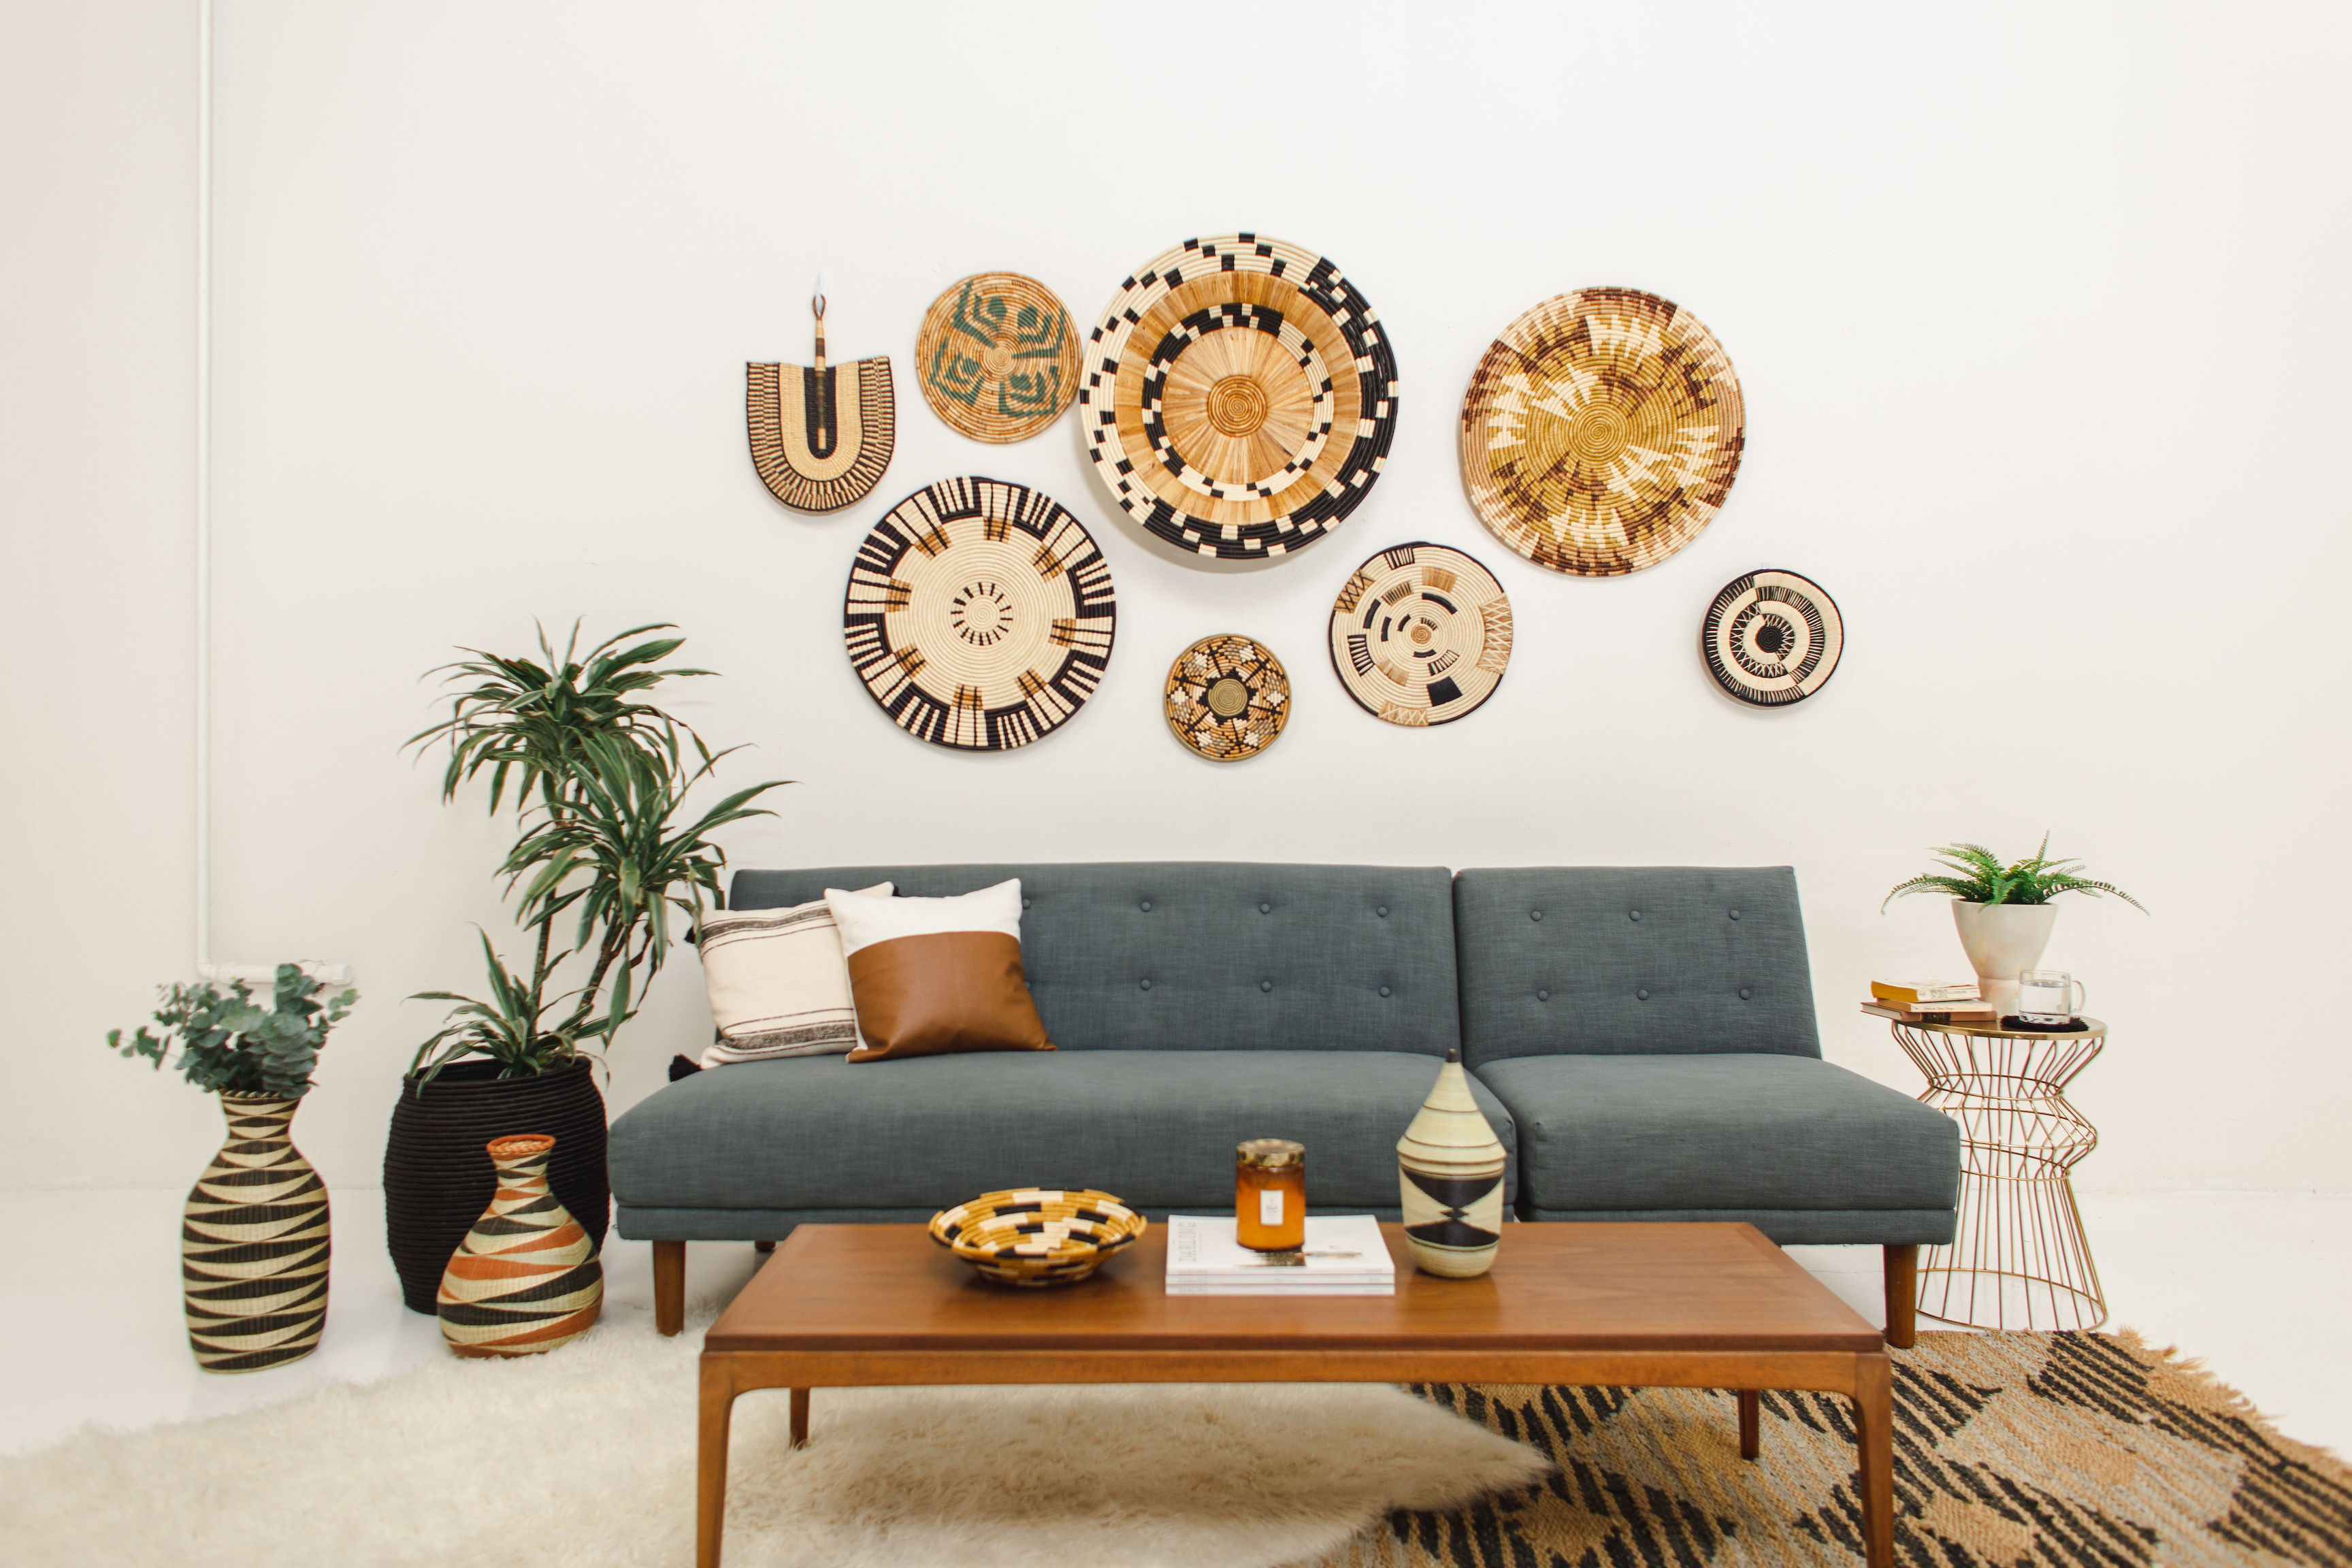 Woven Boho Living Room Accents